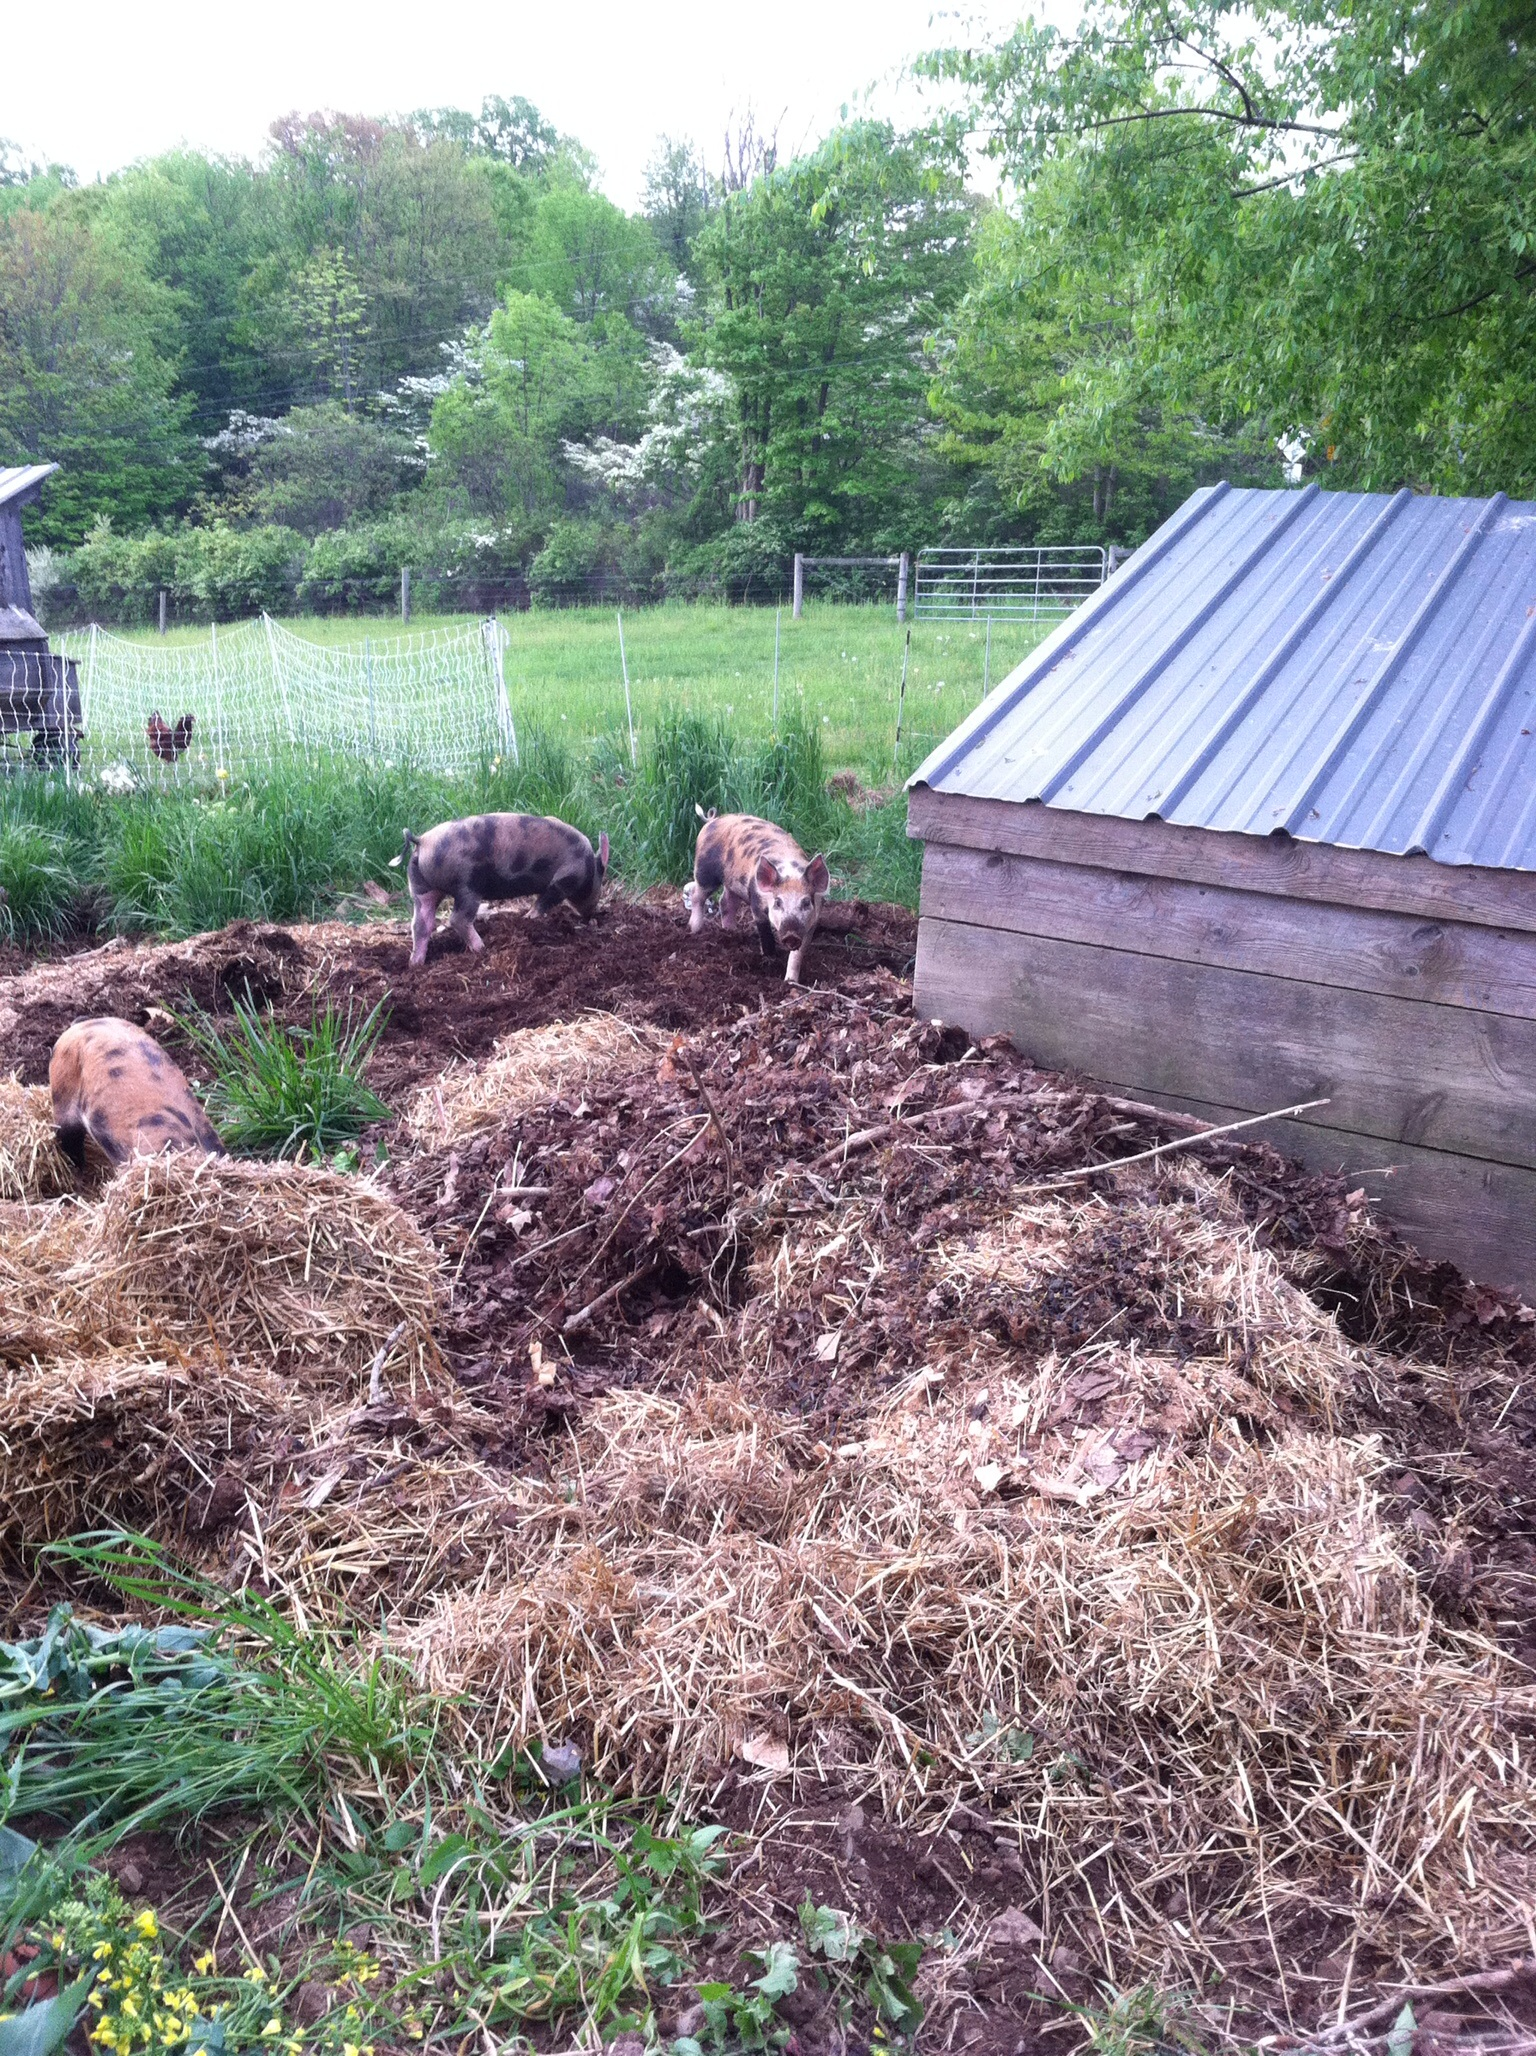 The garden pigyard is at the edge of the yard, close enough to the house to monitor the pigs' antics. To prepare the garden for the pigs' arrival, I left last year's turnips, weeds and volunteer rye to stand and I topped scoops of corn with wheel barrow sized piles of barn bedding. The pighouse was dragged into place and filled with fresh straw.  The pigs got right to work, rooting and digging.